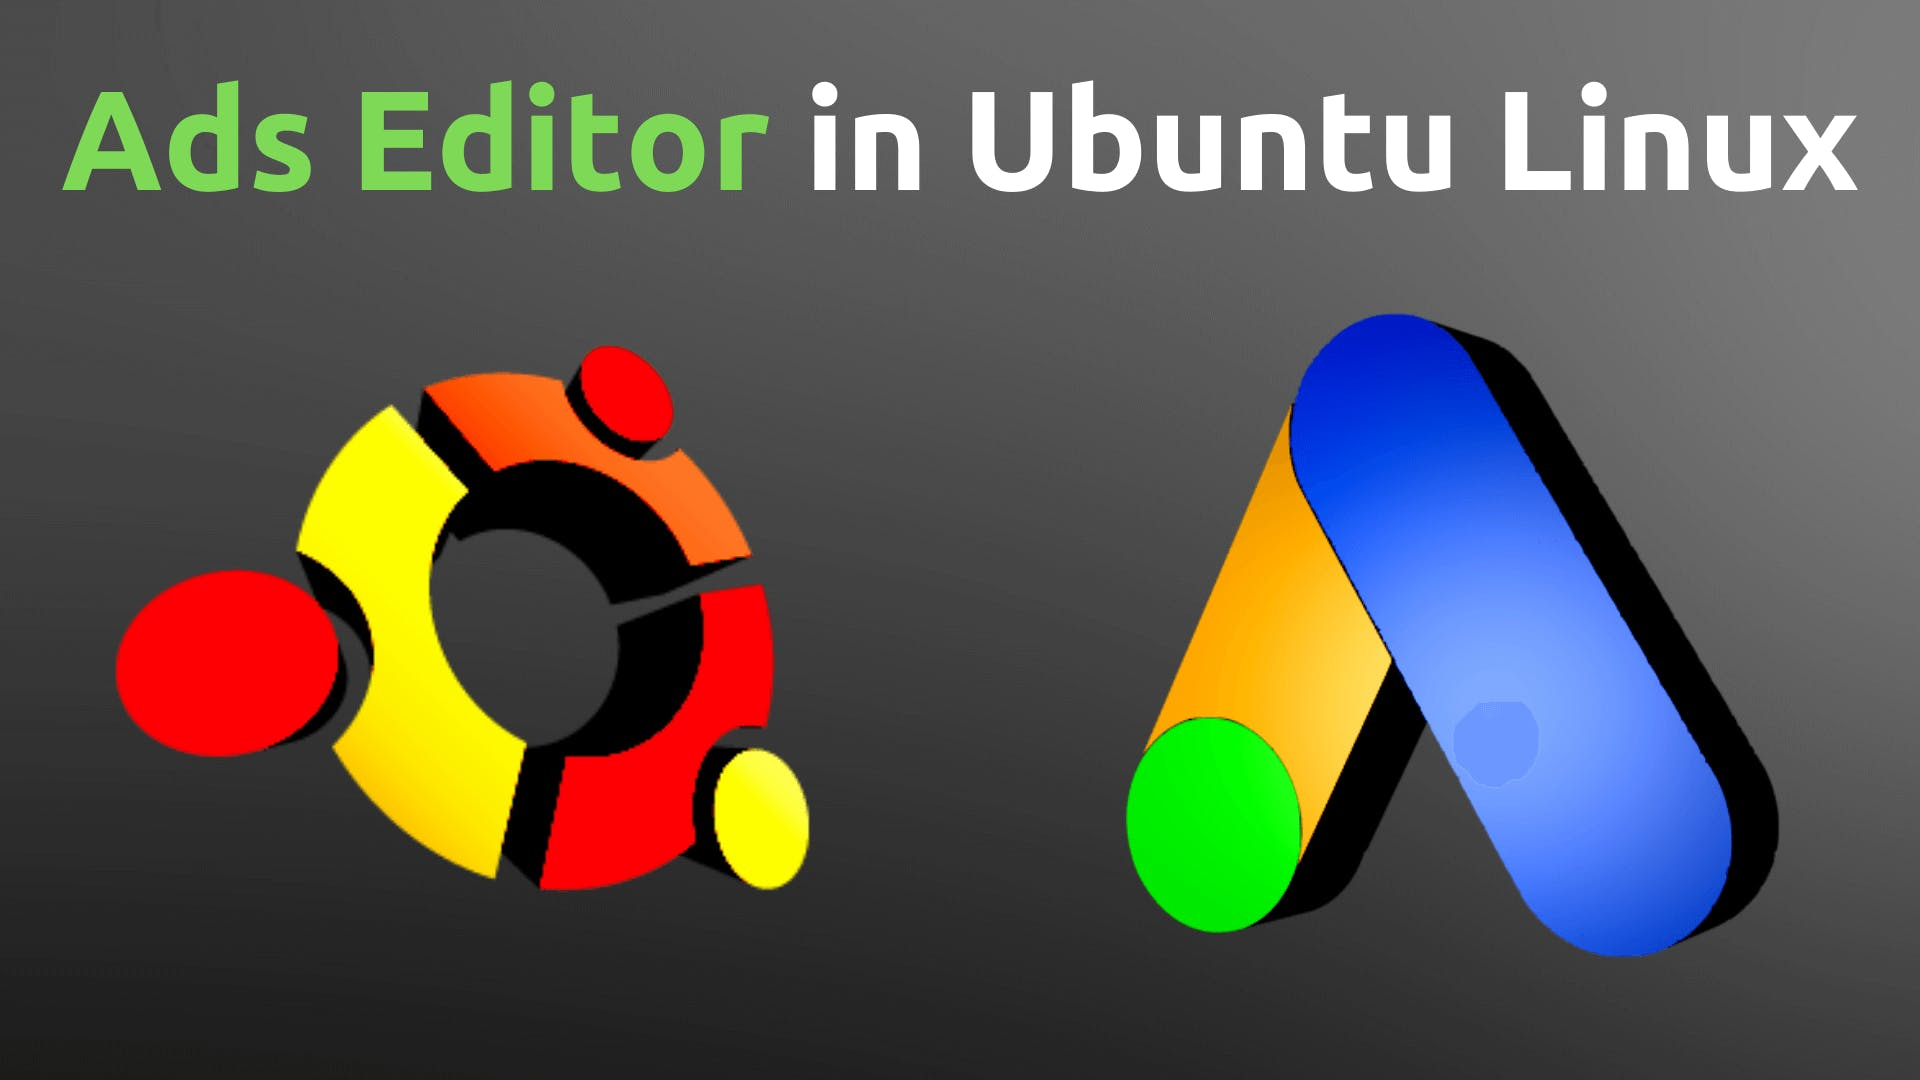 adwords editor on ubuntu linux